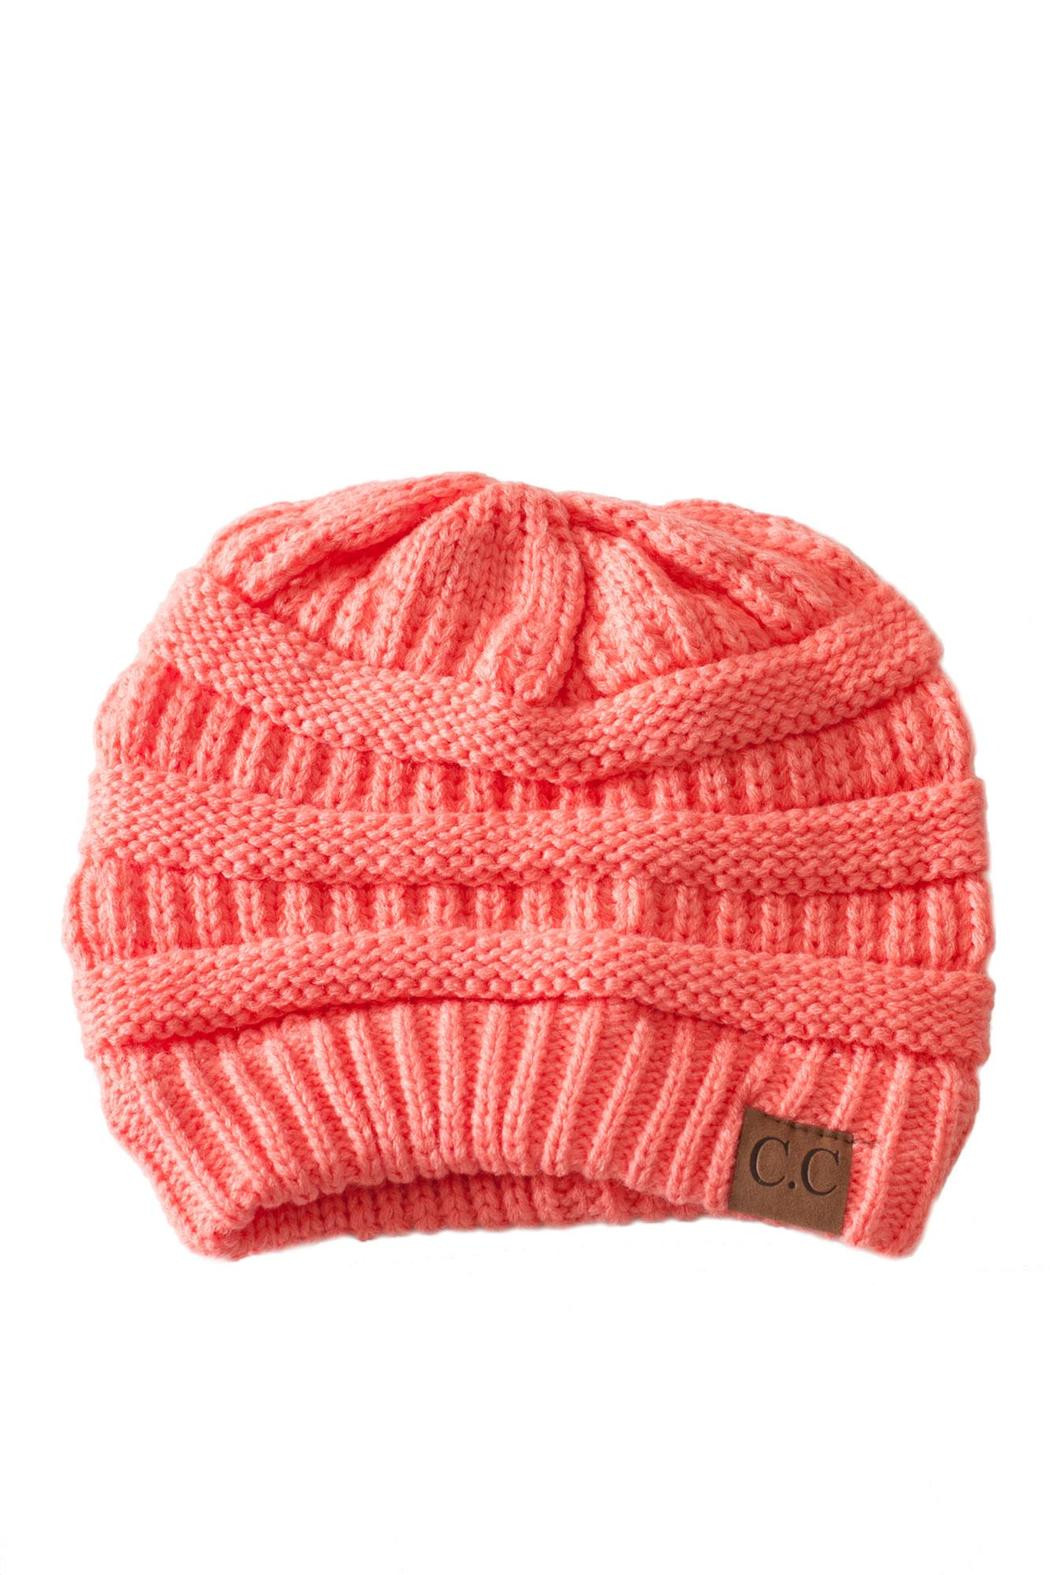 C.C. Coral Knit Beanie - Main Image